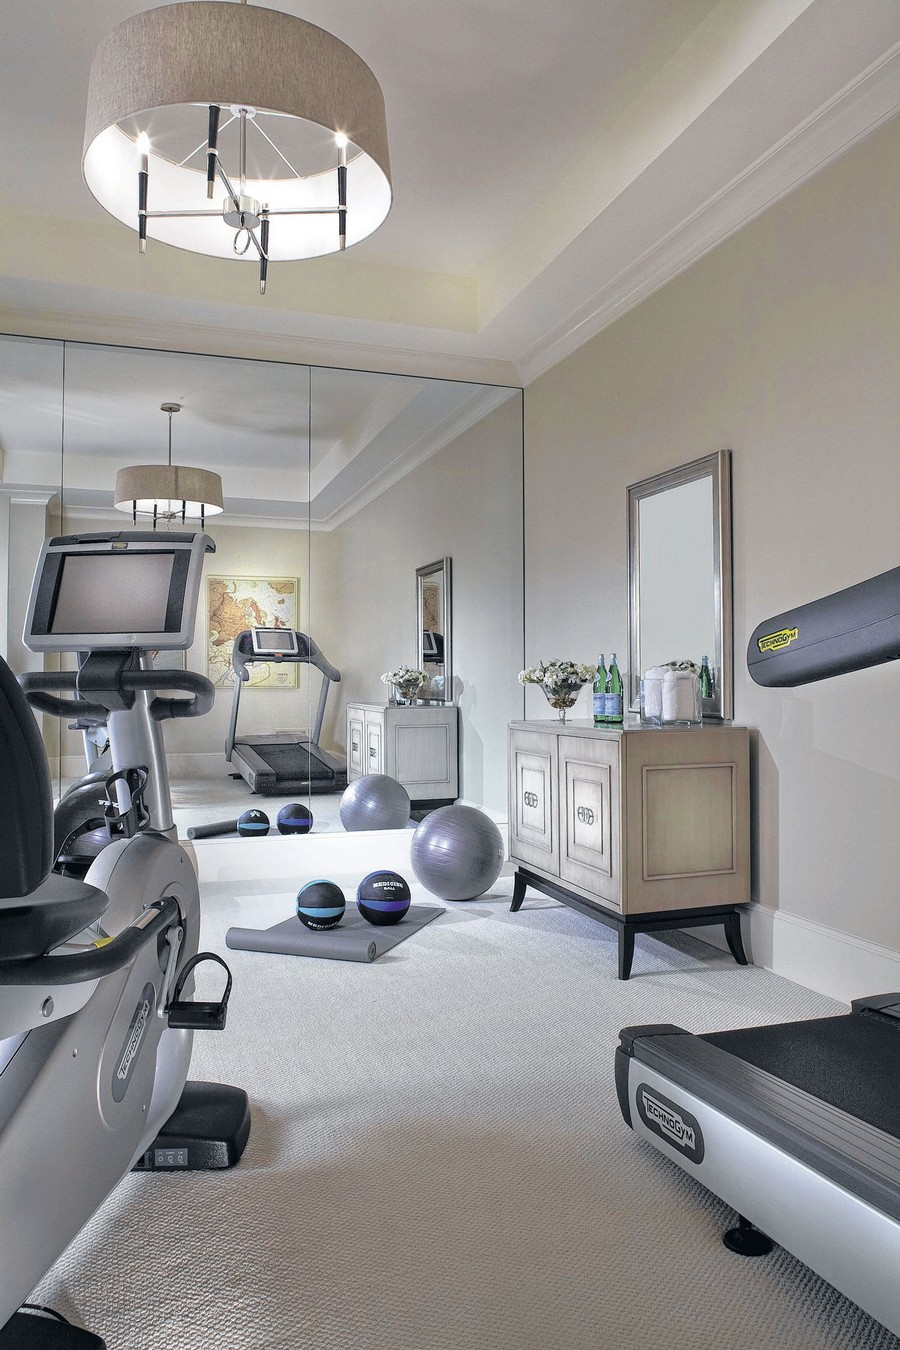 Home gym interior design tips home interior design for Best interior decorating sites